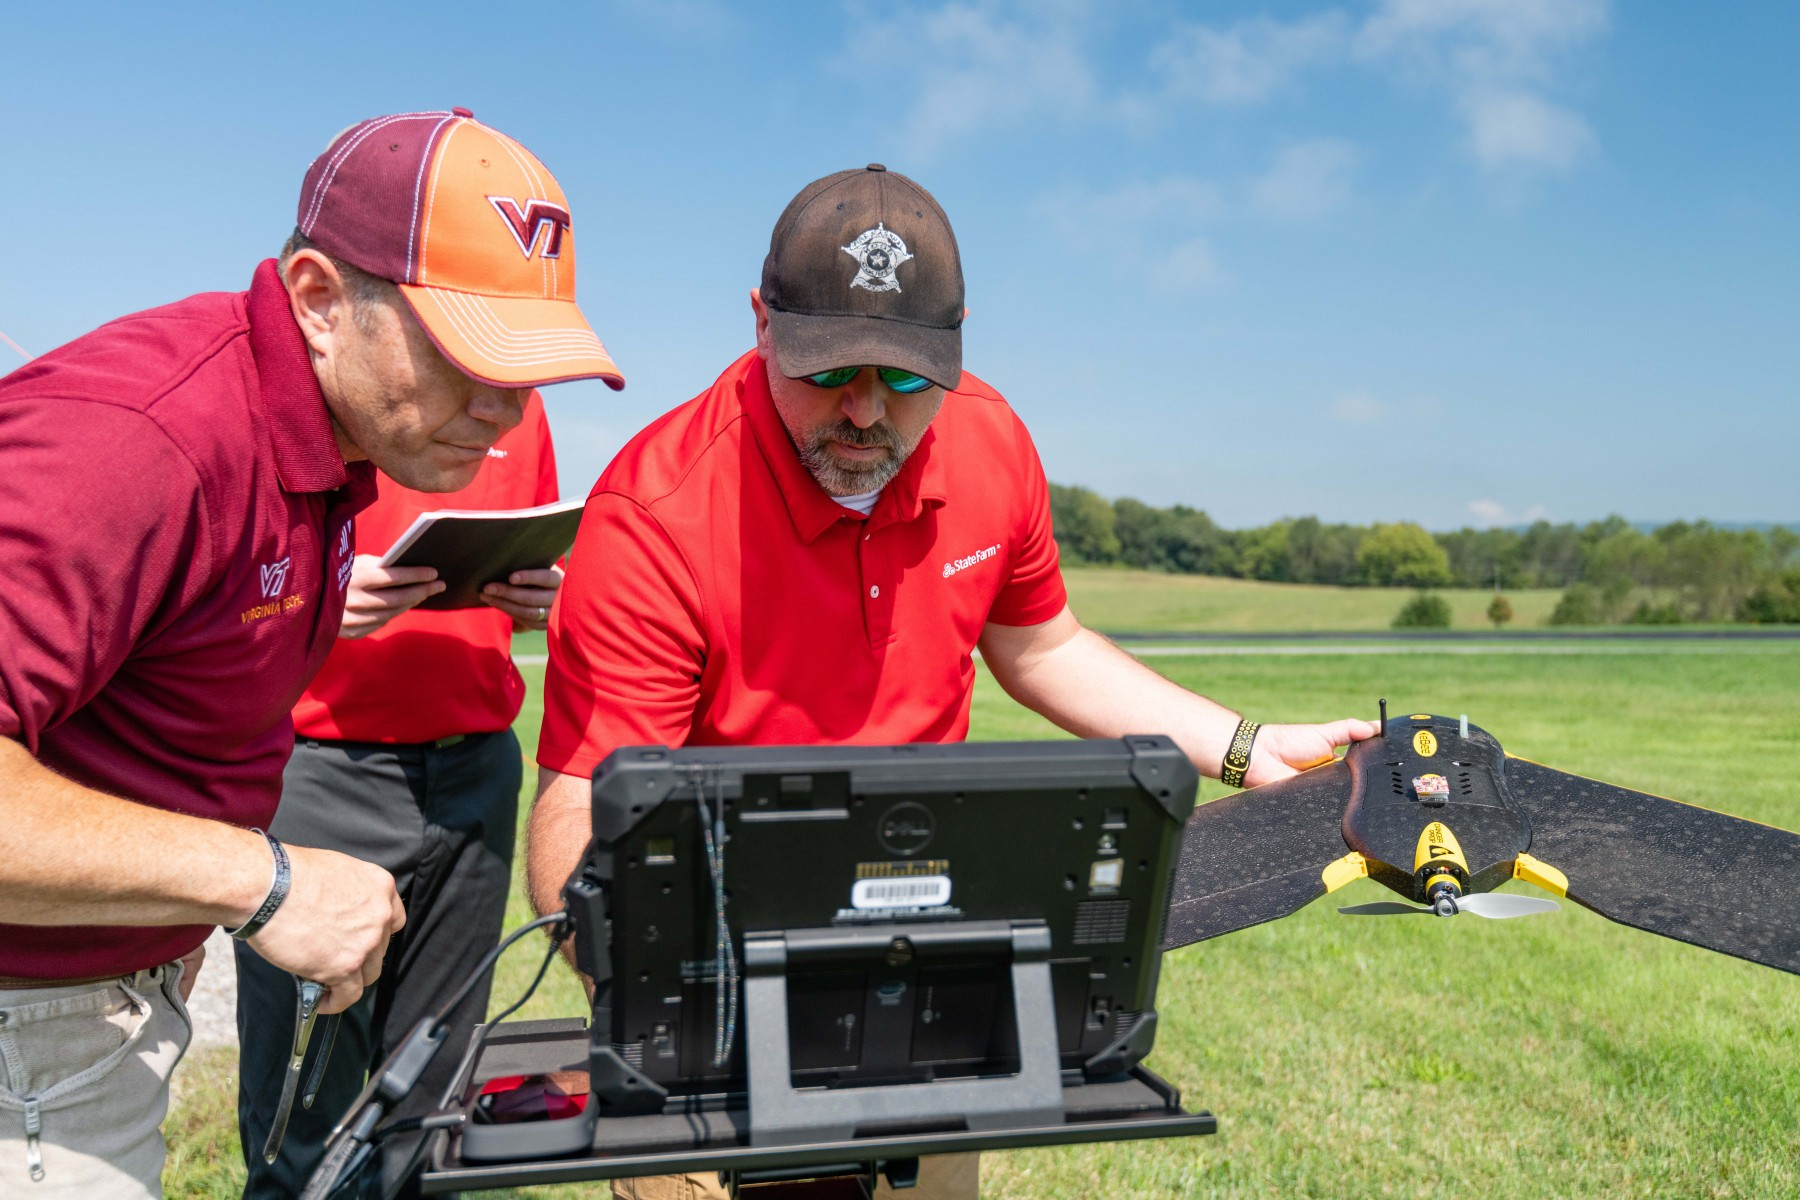 State Farm drone pilots conduct drone flights with Mid-Atlantic Aviation Partnership (MAPP) at Virginia Tech